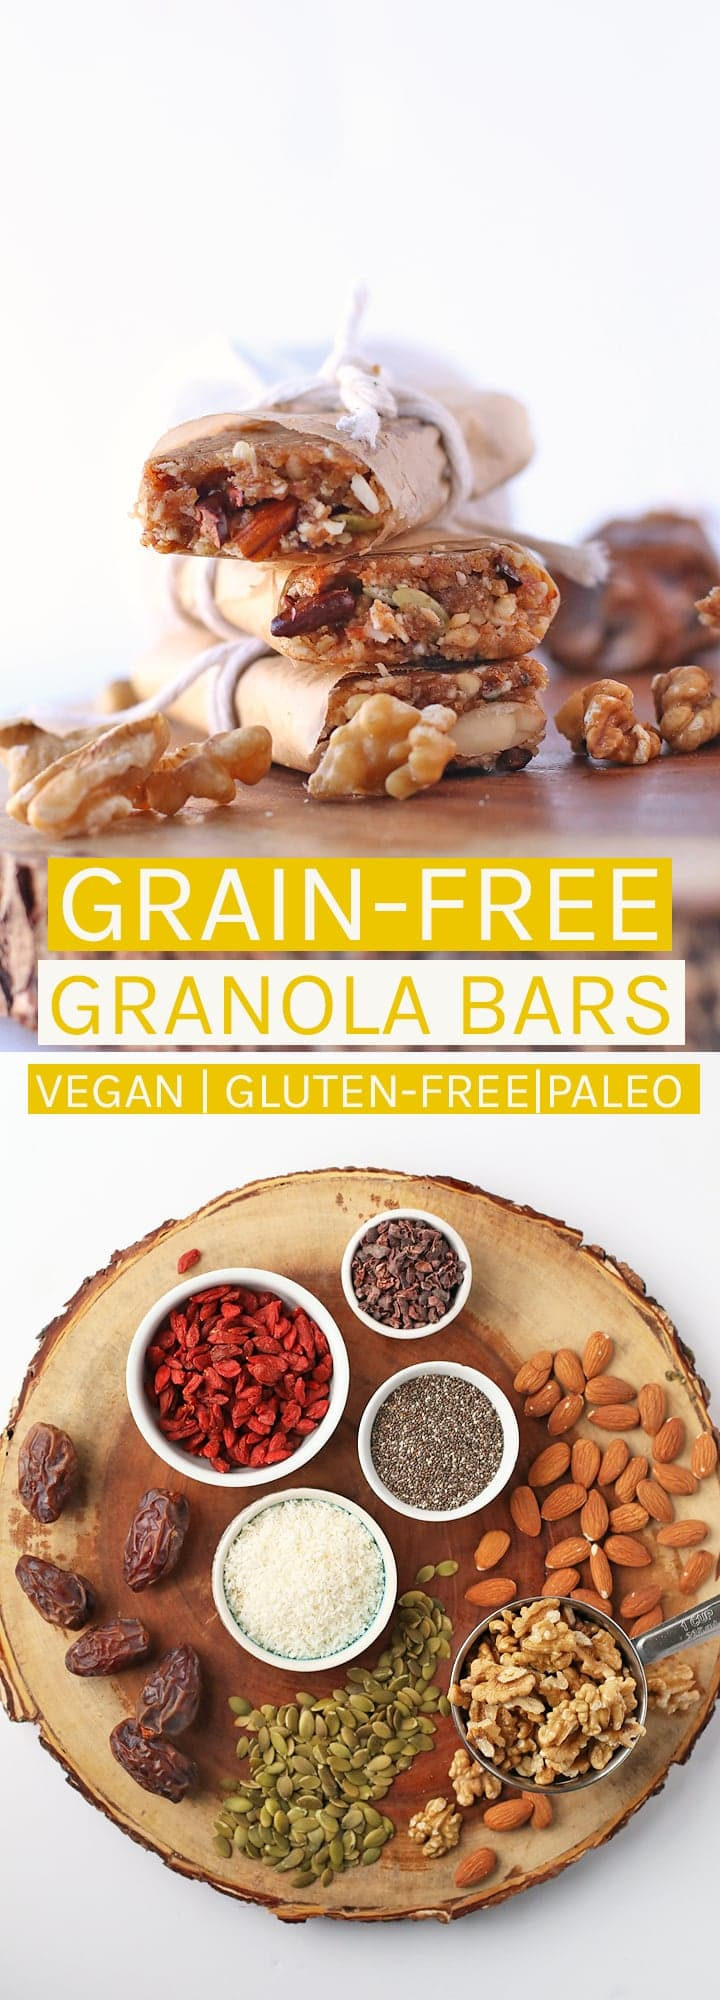 Fuel up with these superfood-packed grain-free granola bars. Vegan and paleo for a snack everyone will love!